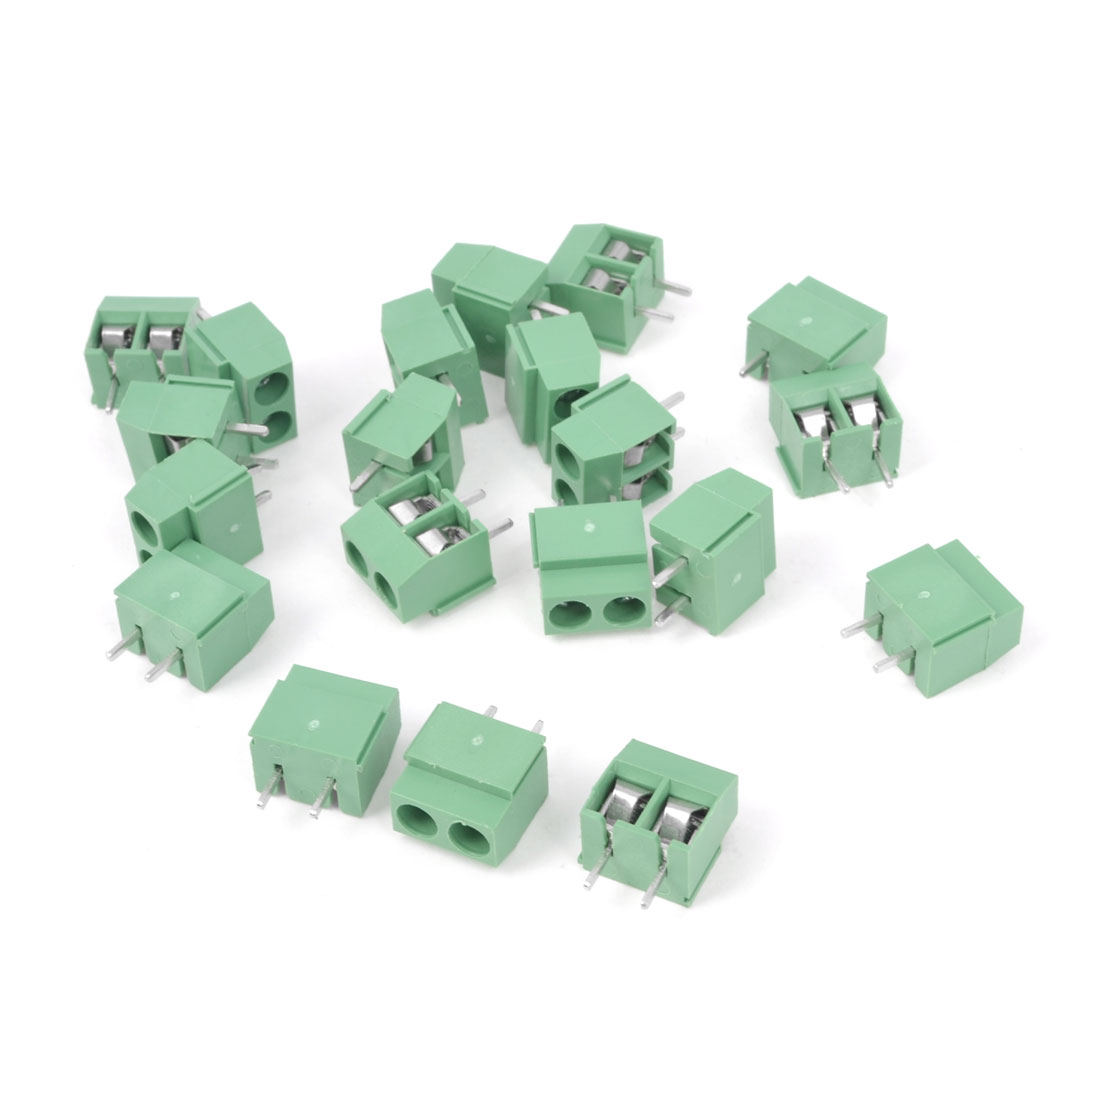 20Pcs 300V 10A 2P 5mm Pitch PCB Screw Terminal Block Connector Green